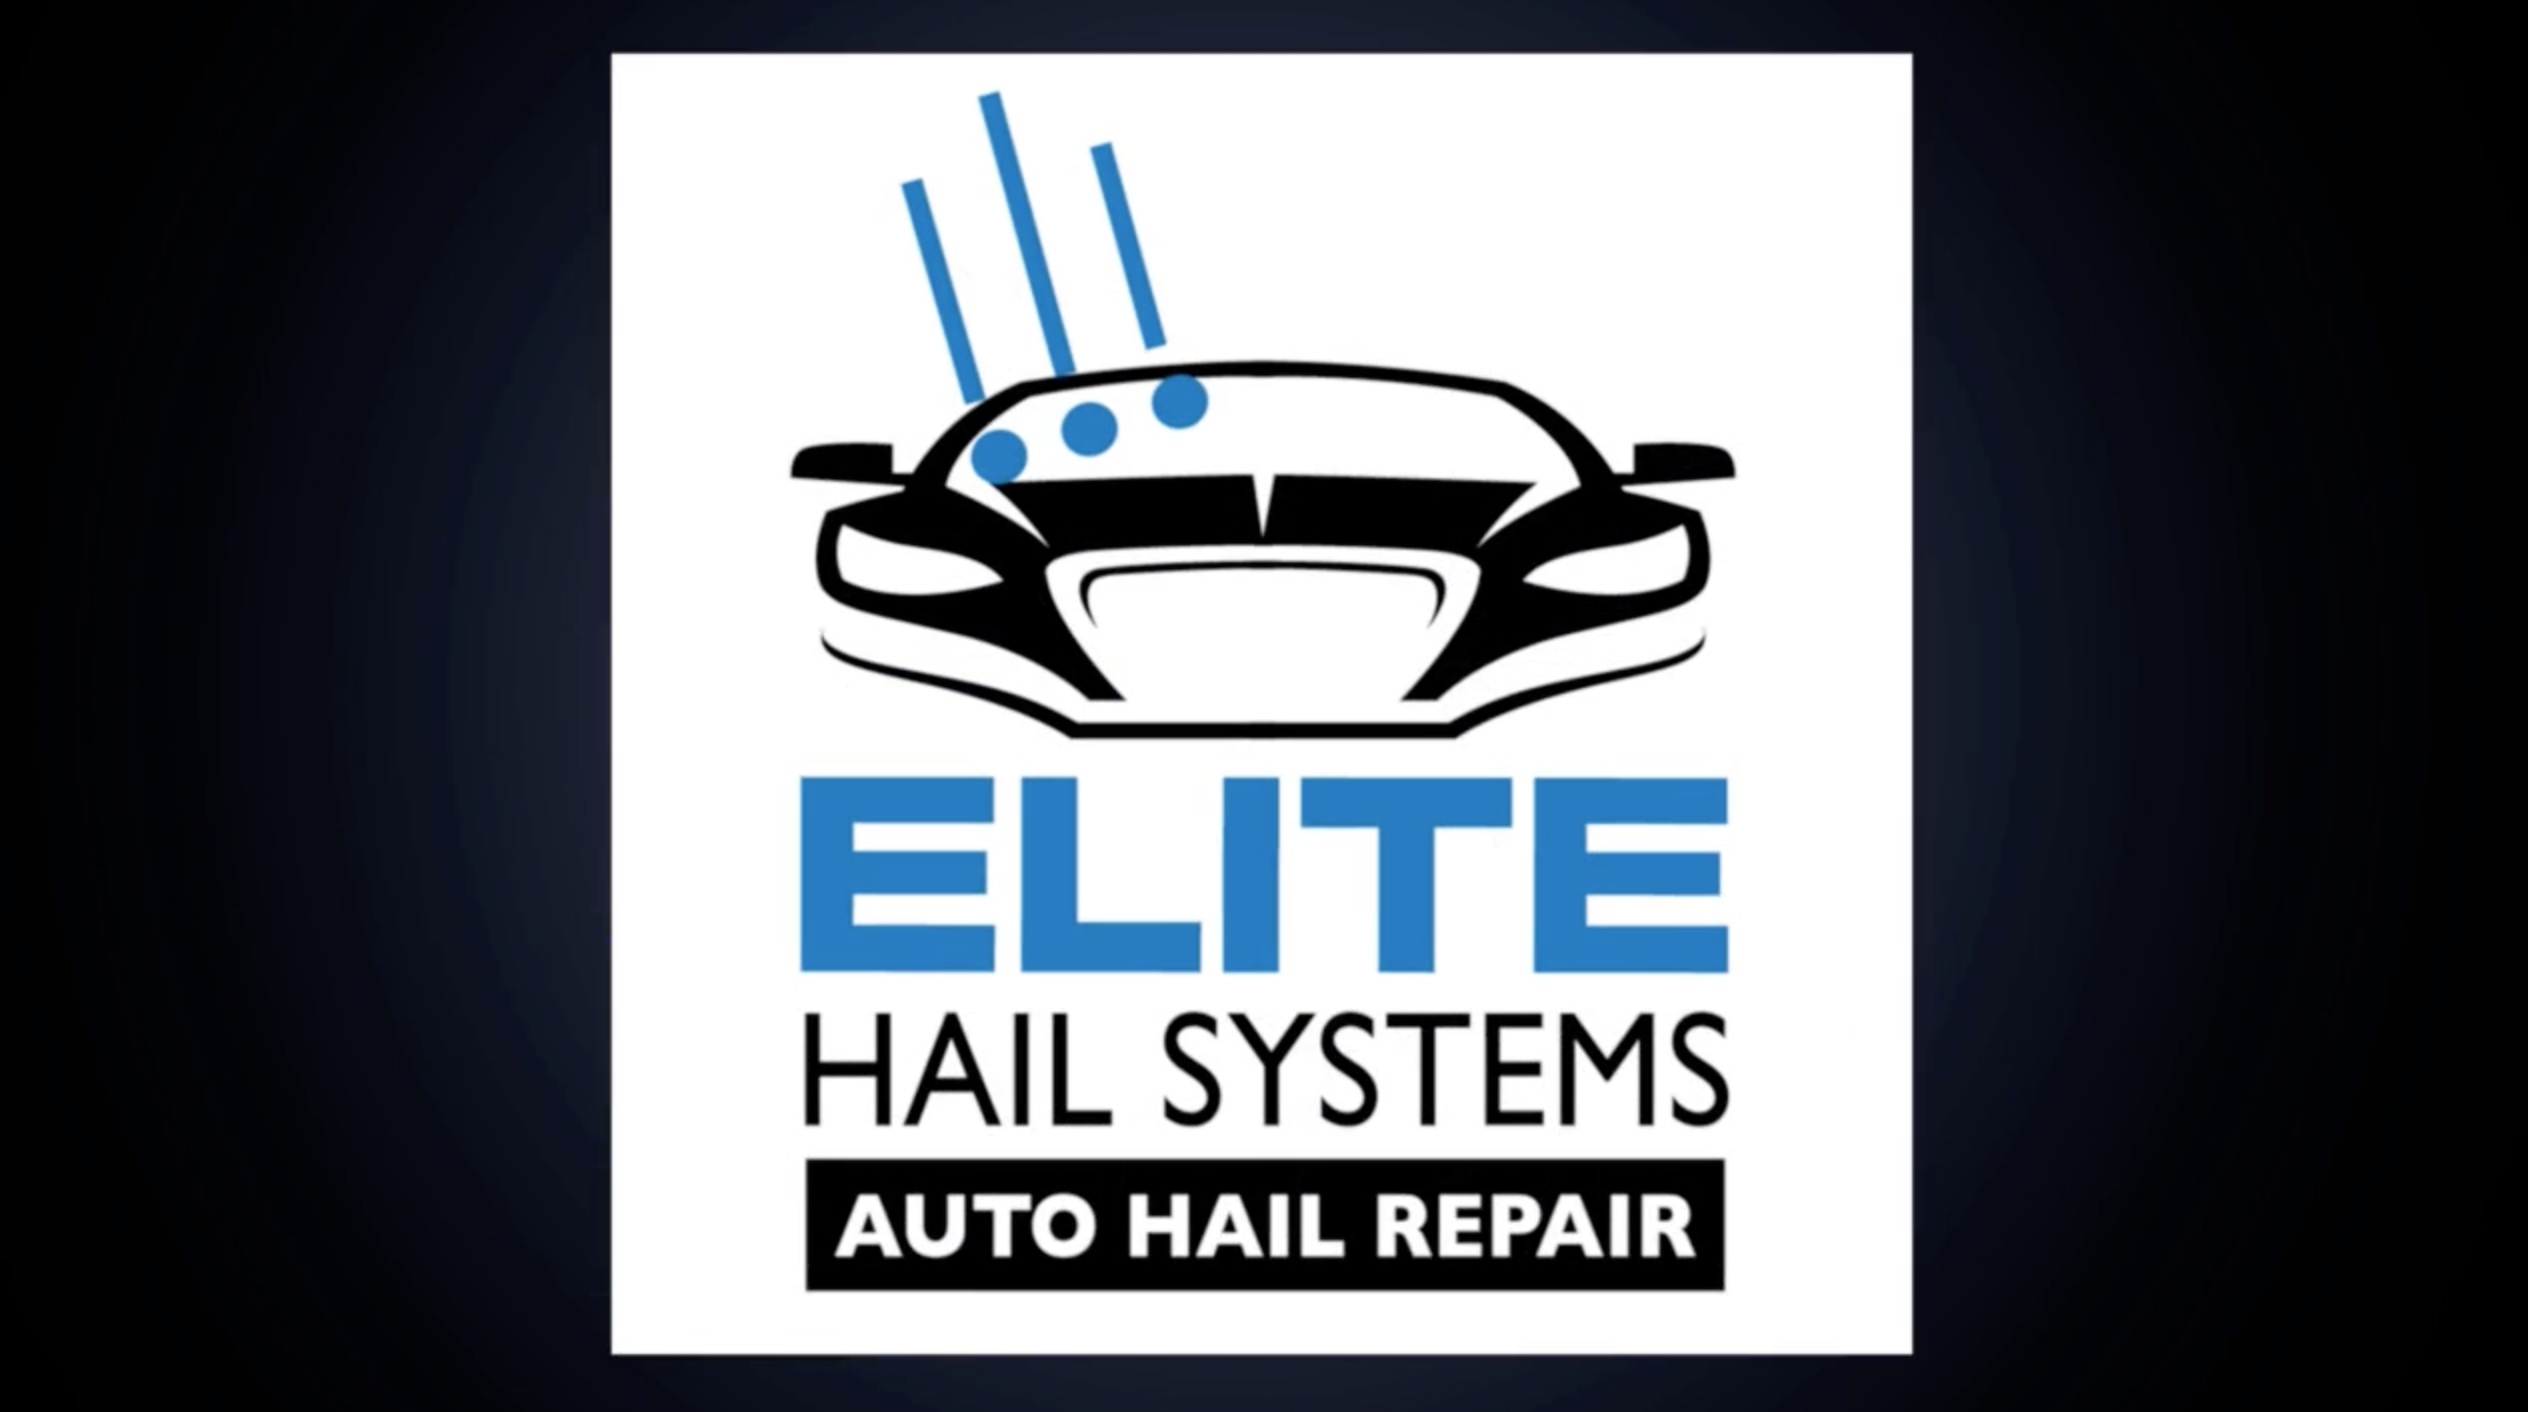 Dan And Other Car Electronics Specialists Are Ready To Help You